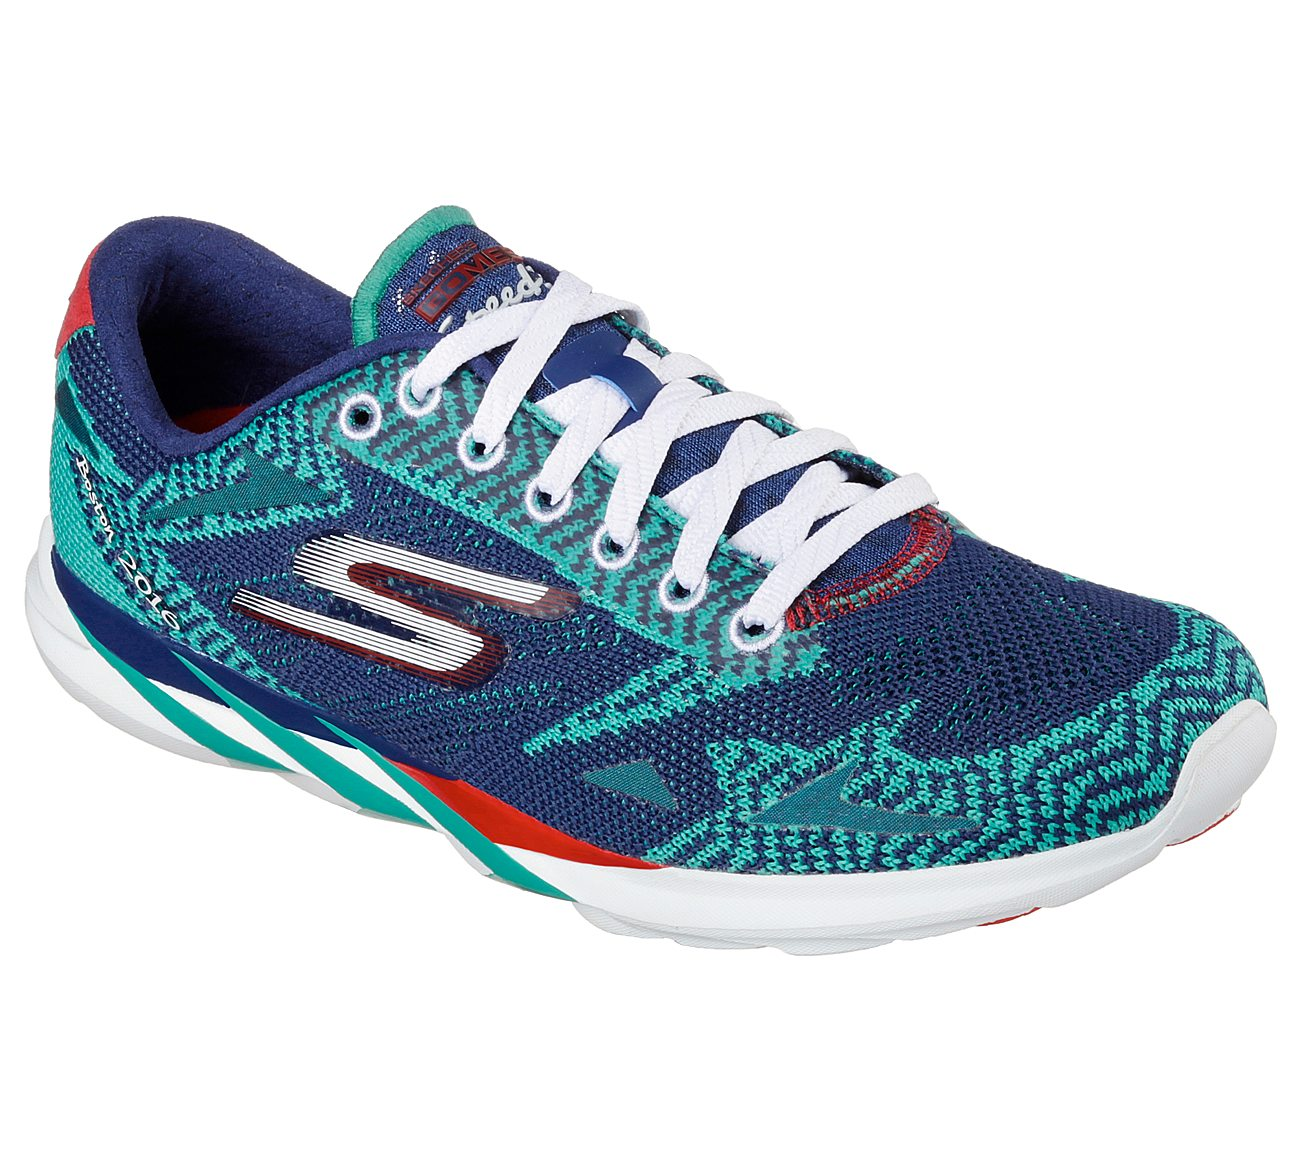 skechers shoes for women 2016